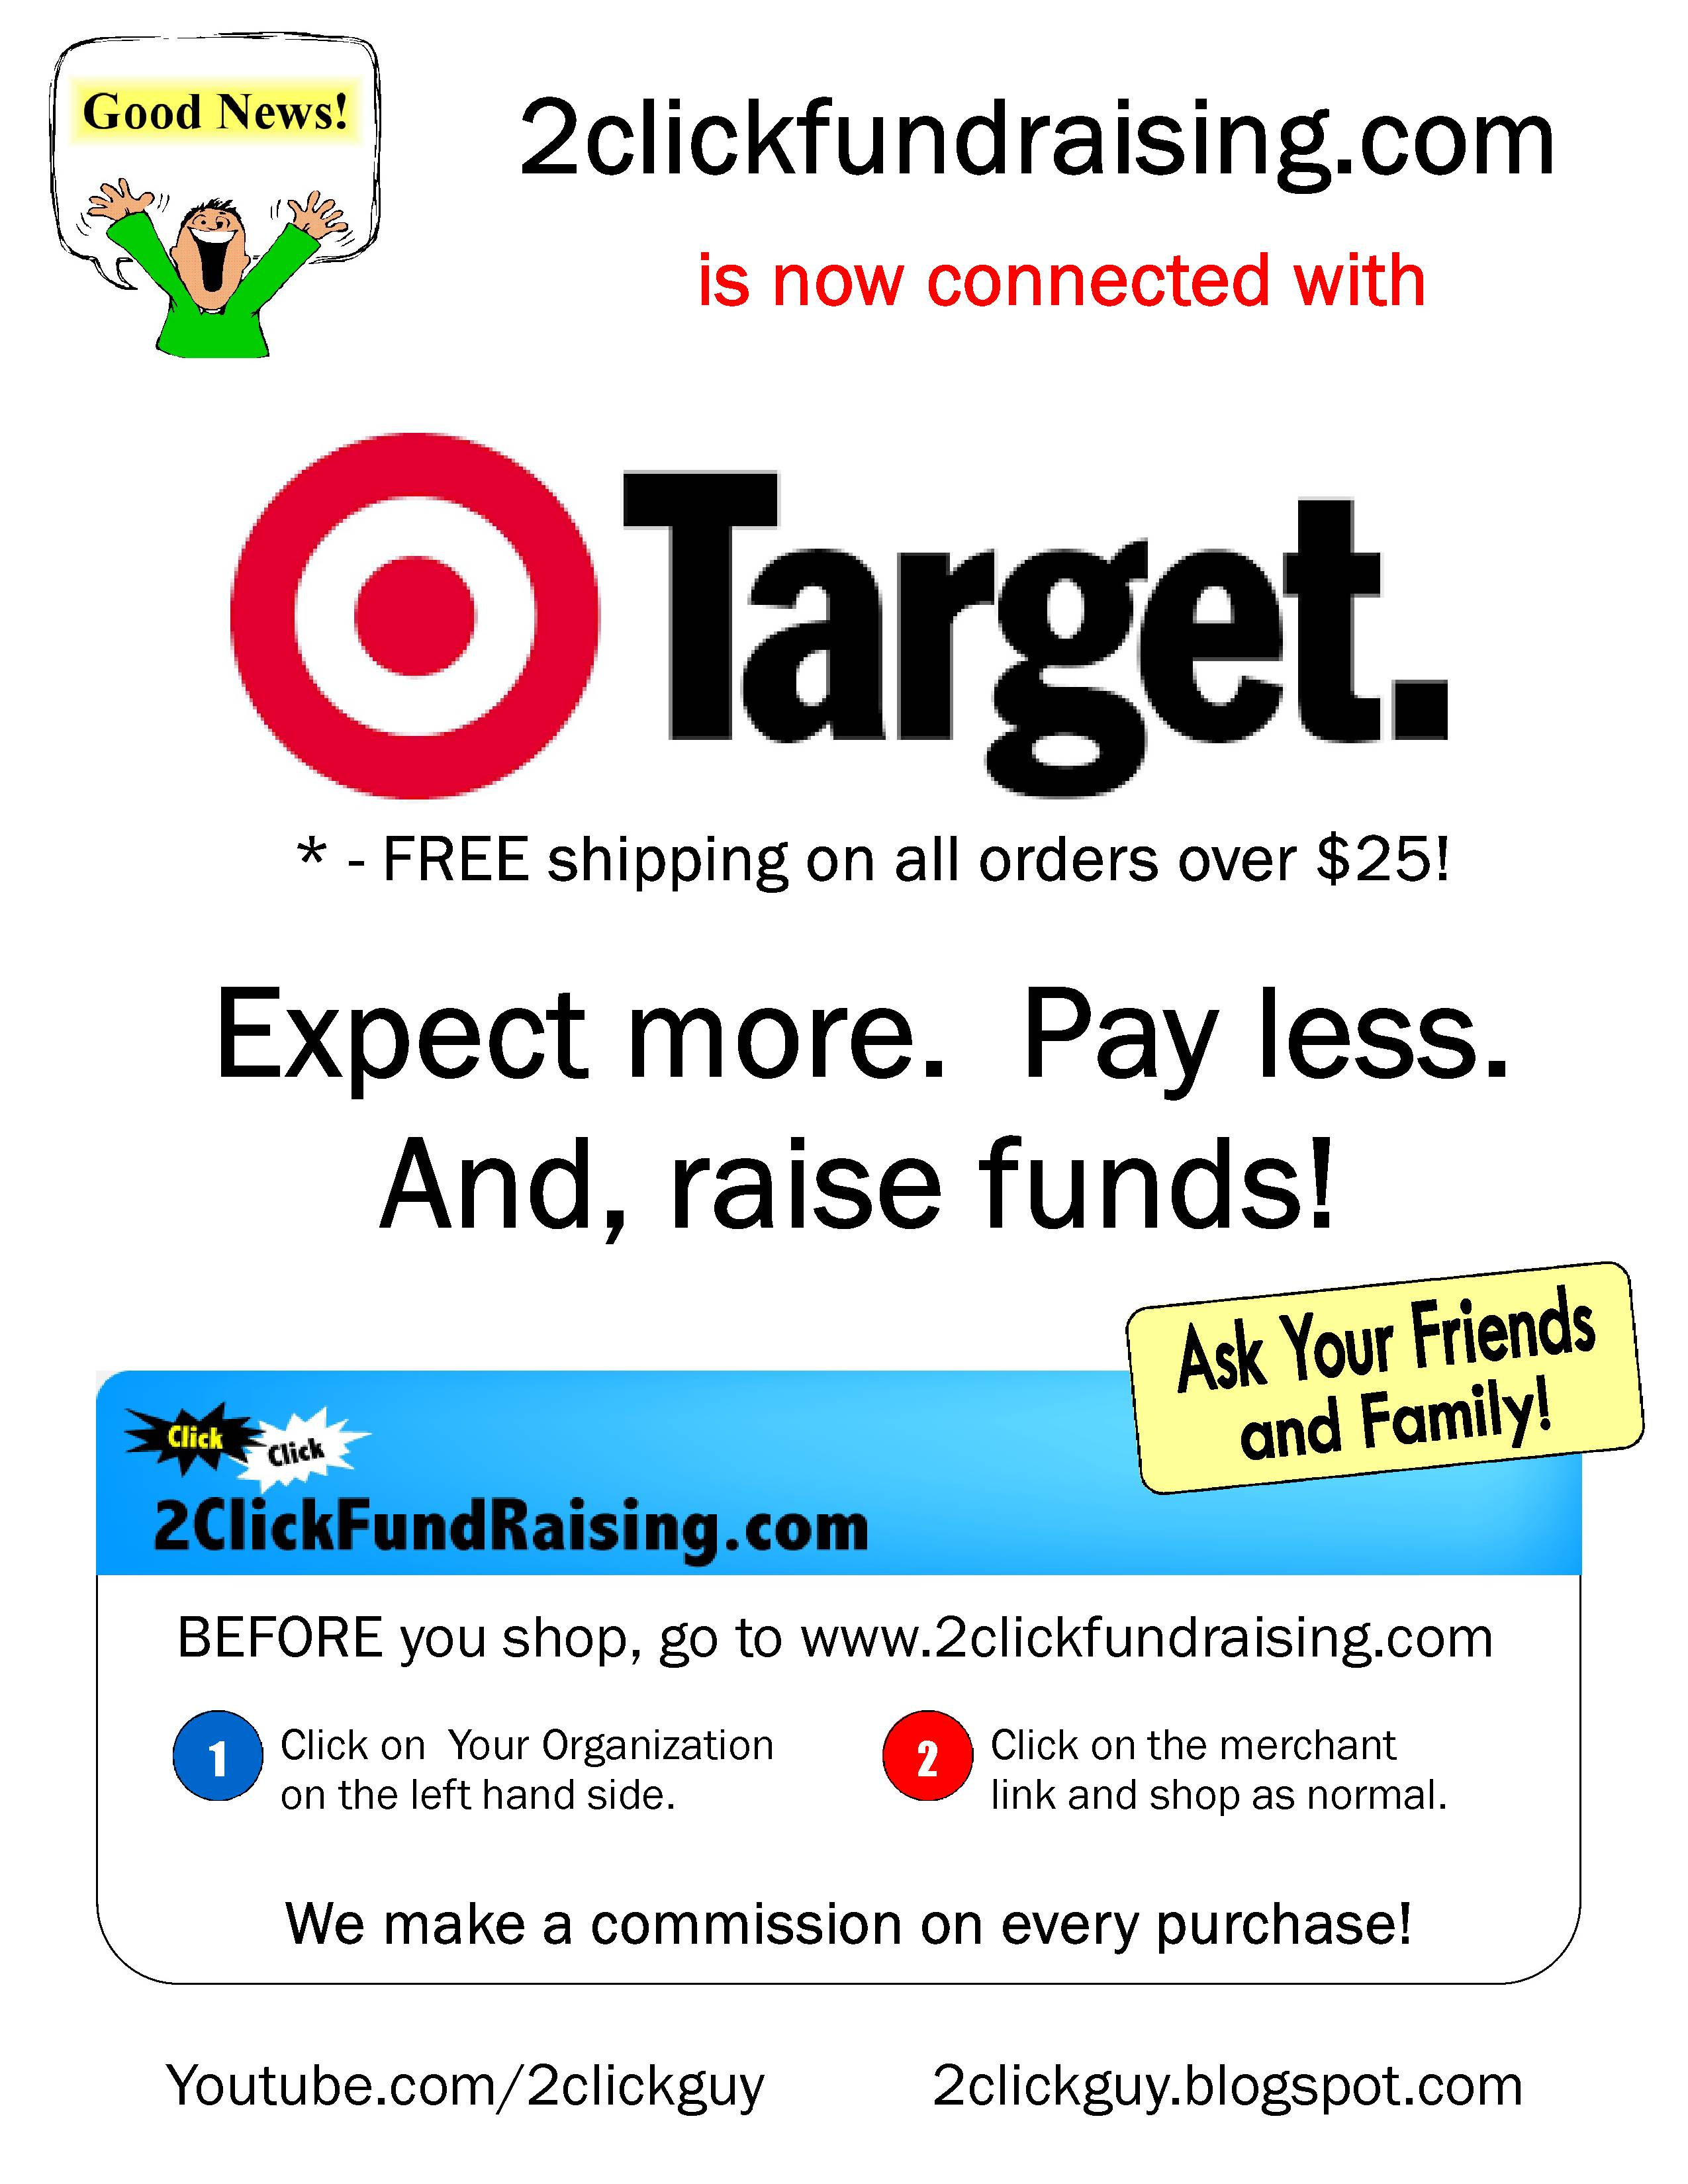 2ClickFundraising now supports Target!